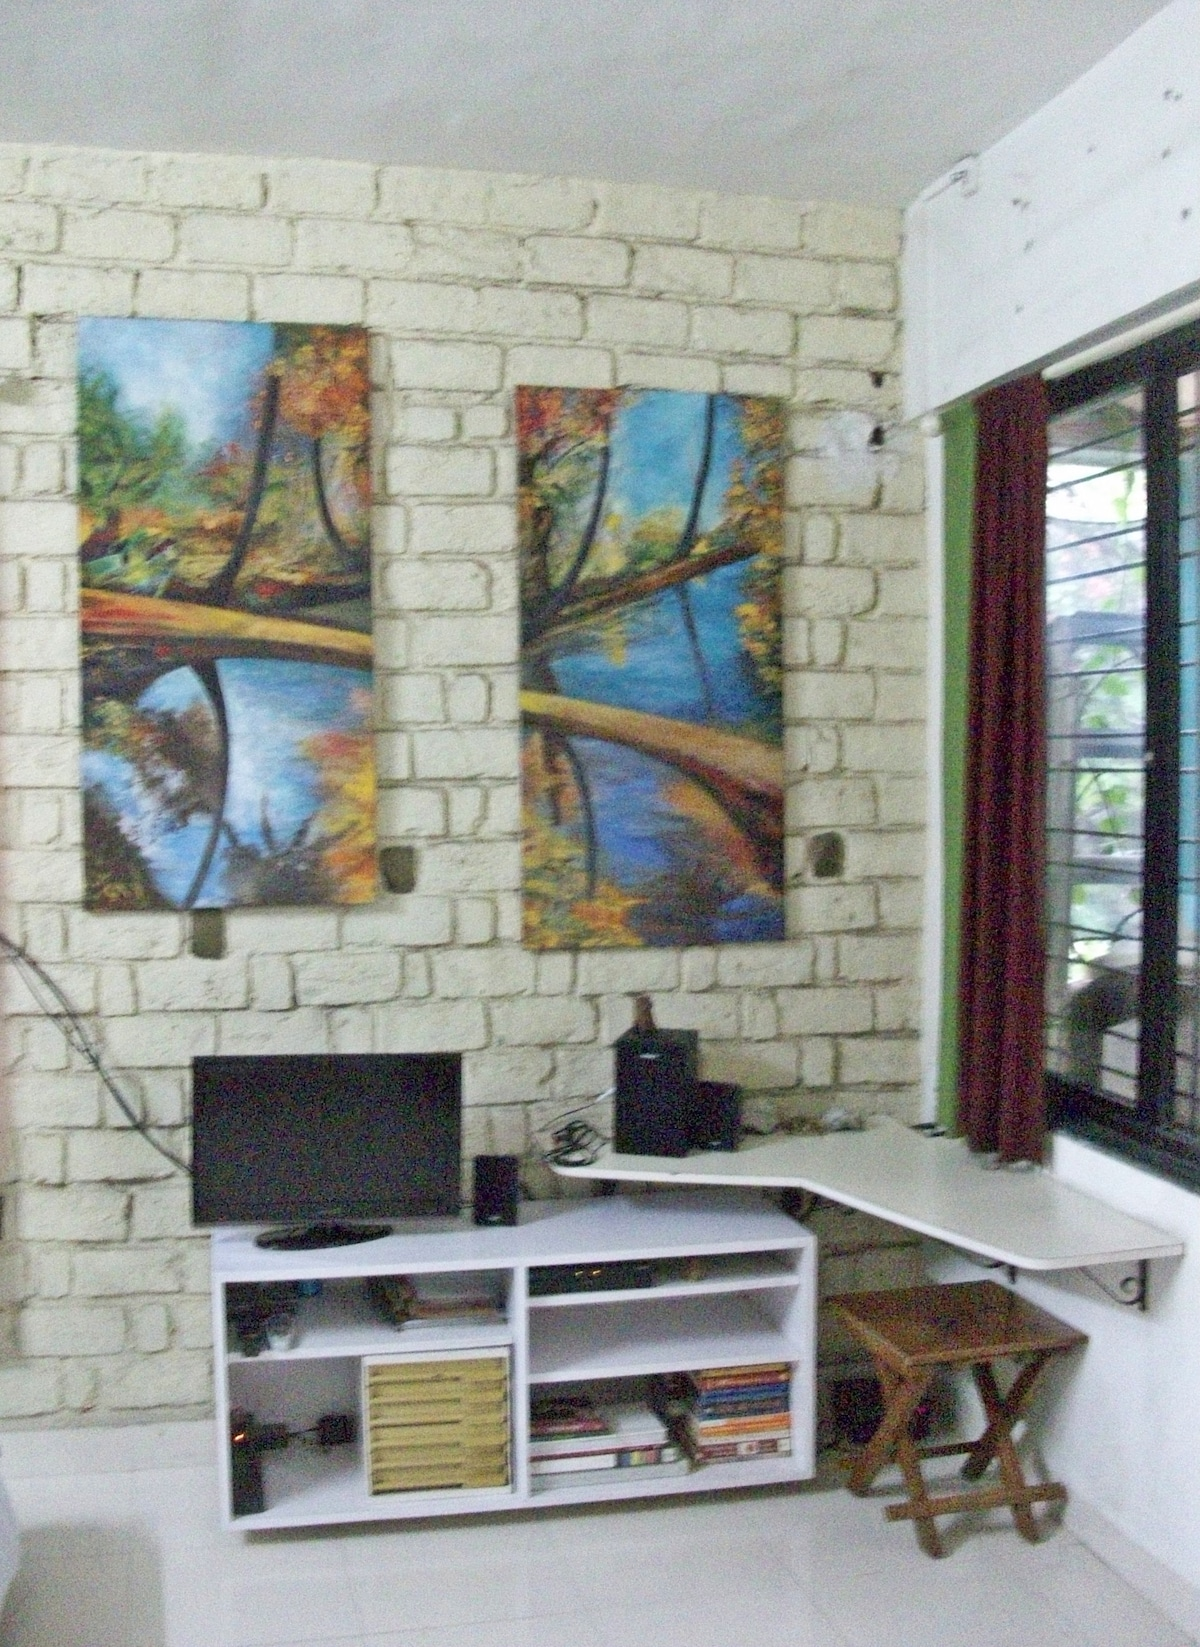 Entertainment and writing space